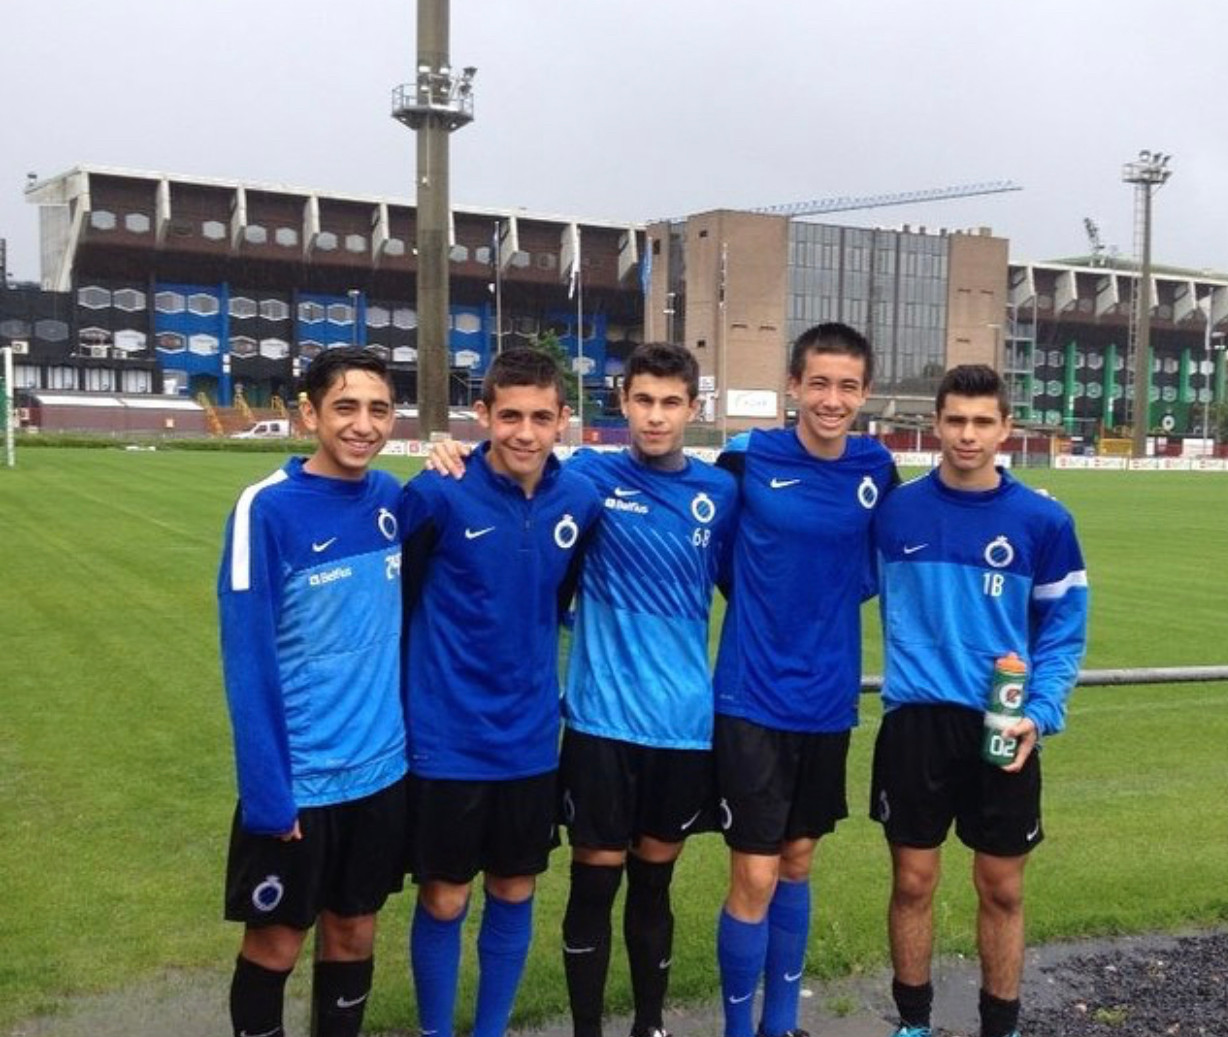 Coaches Training with Club Brugge